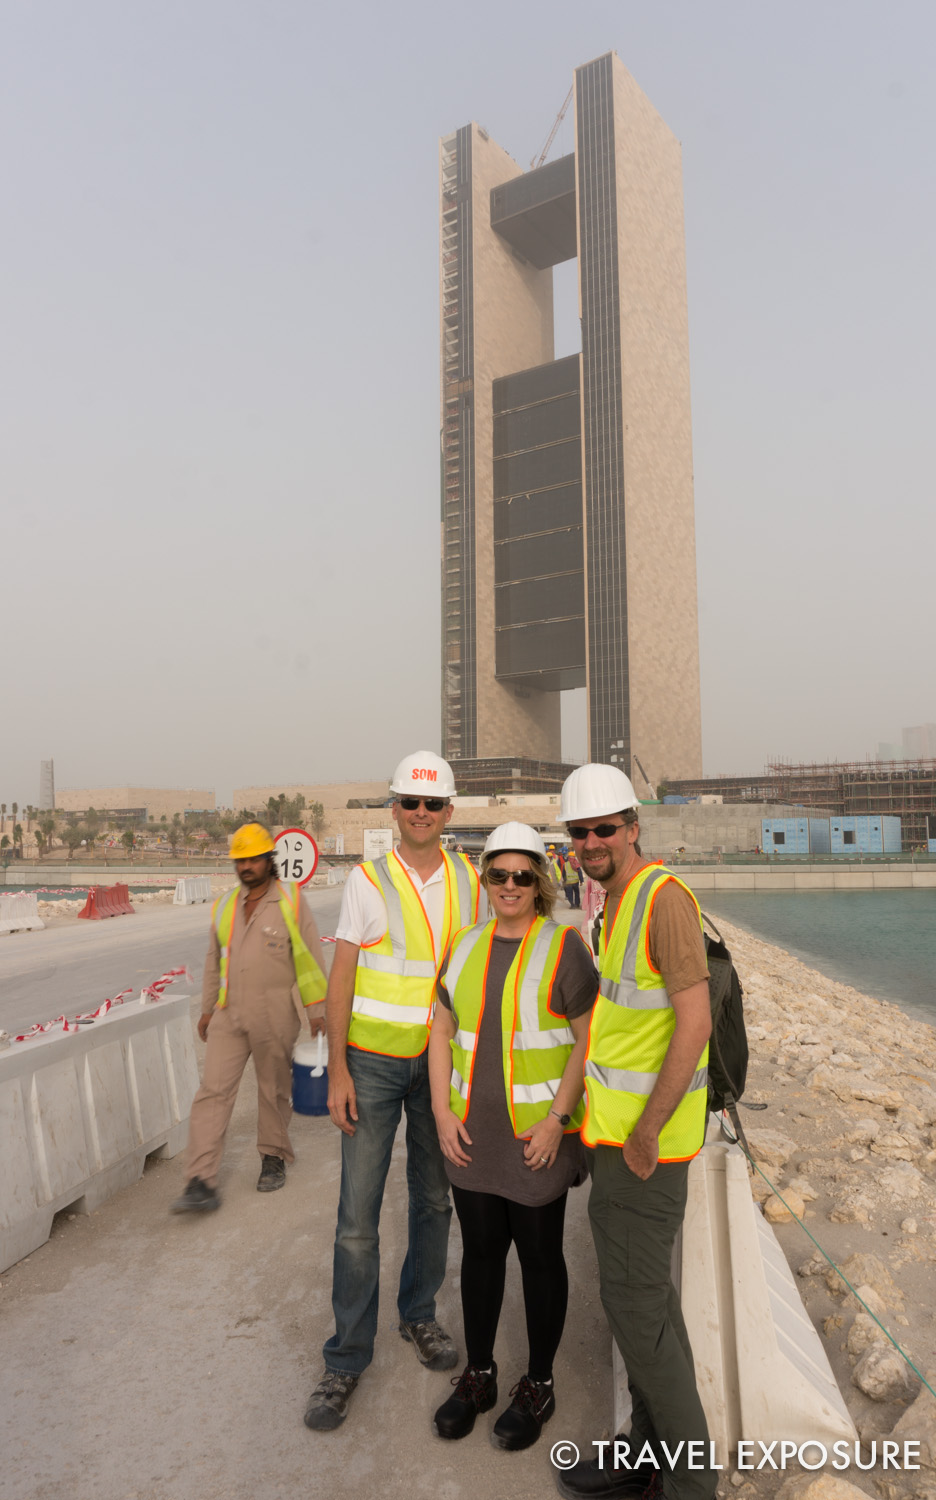 In the middle of one of the newest reclaimed islands in Bahrain is the upcoming Four Seasons Hotel. Our friend Brian is the on-site architect overseeing the design and construction and gave us a tour.